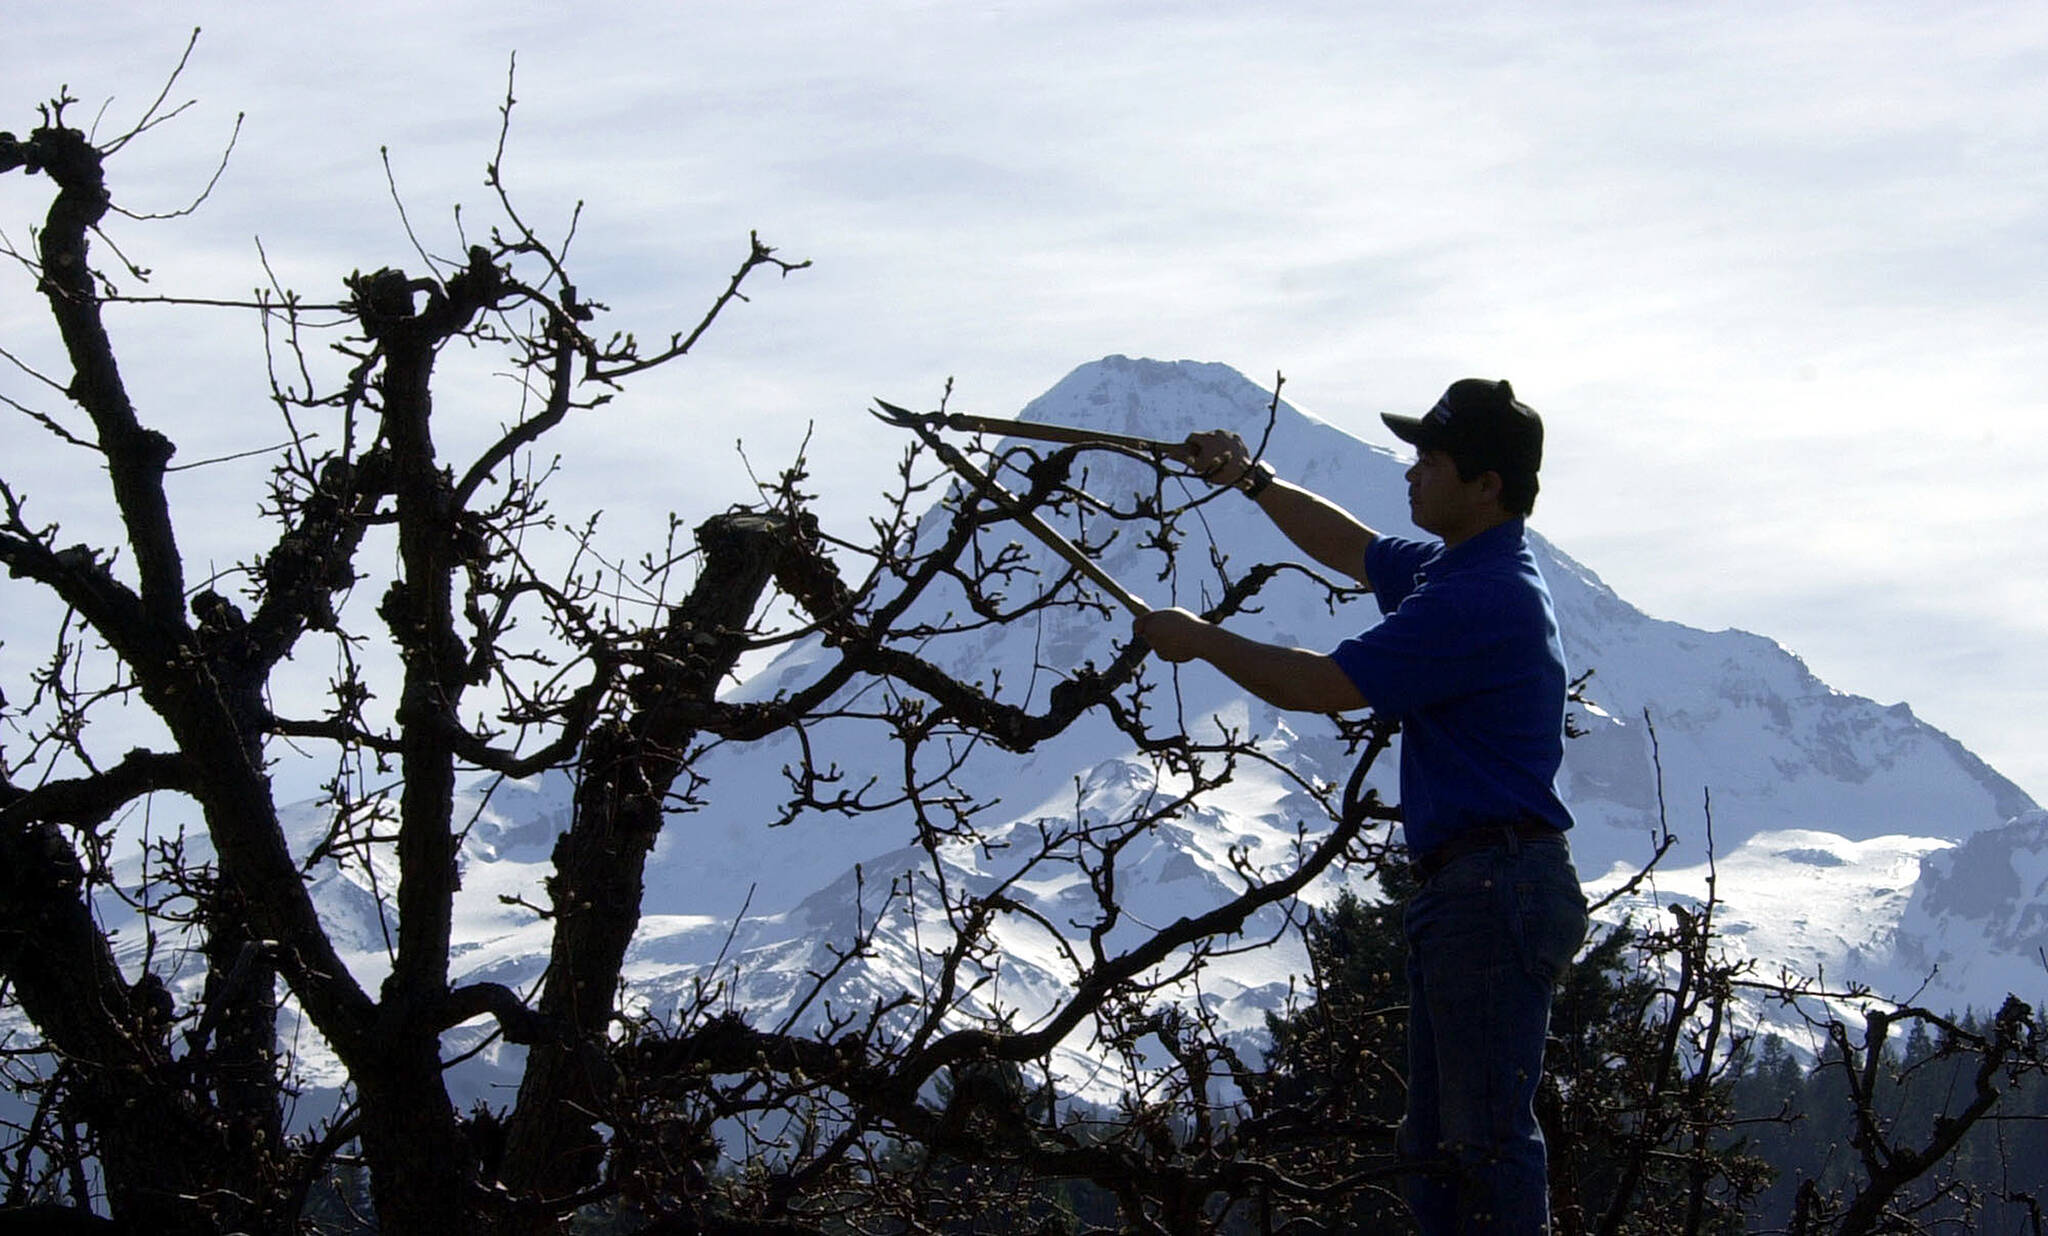 """Pruning fruit trees is one of the jobs where temporary foreign workers may be used. B.C. moves to a minimum working age of 16 as of Oct. 15, with exeptions for """"light work"""" on farms such as hand harvesting. (AP Photo/Don Ryan)"""